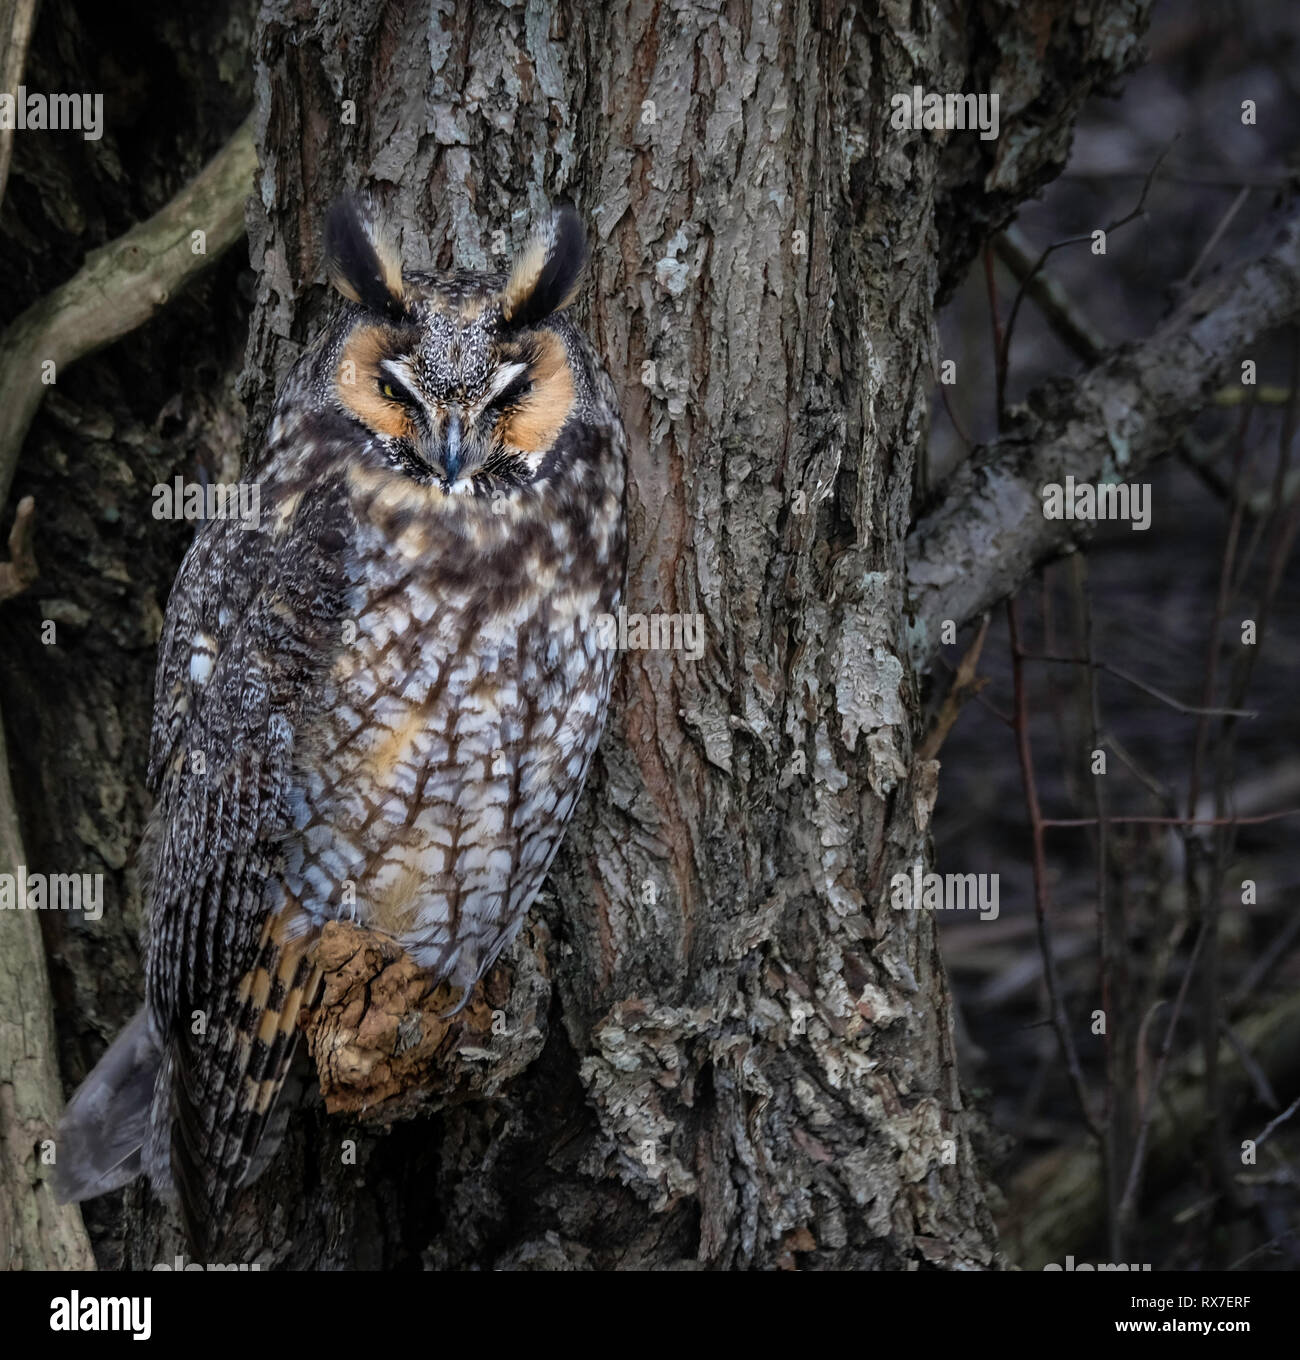 Long-eared Owls(Asio otus) are lanky owls that often seem to wear a surprised expression thanks to long ear tufts that typically point straight up lik - Stock Image